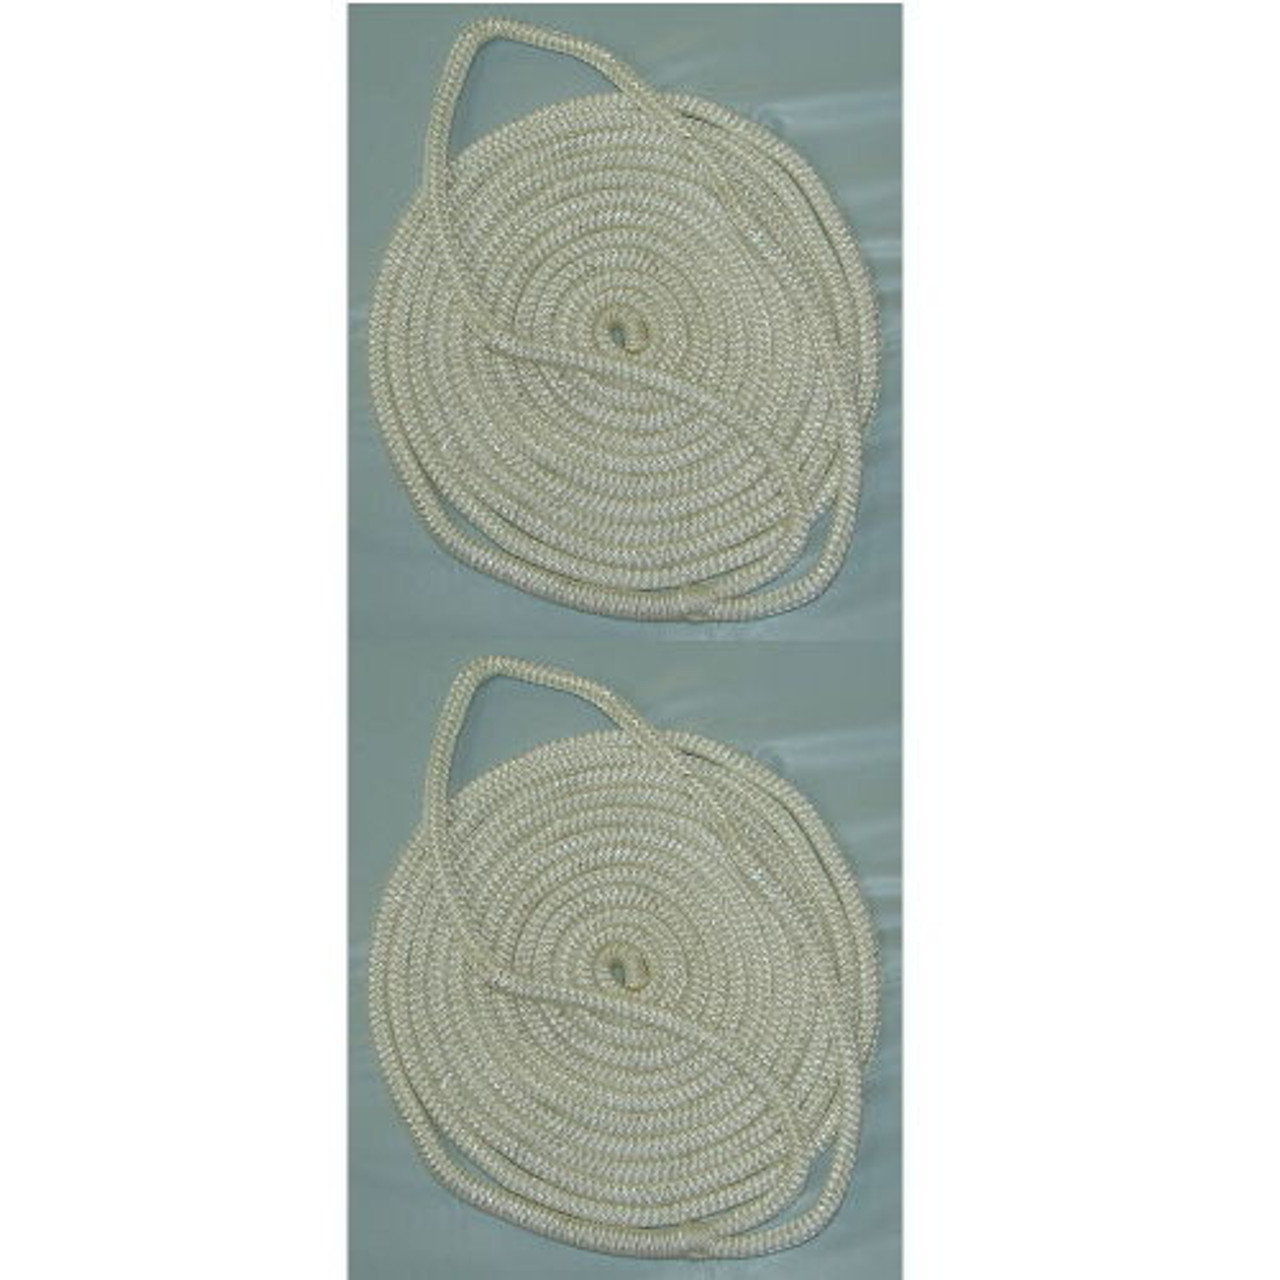 2 Pack of 3//8 Inch x 6 Ft Forest Green Double Braid Nylon Fender Lines for Boats